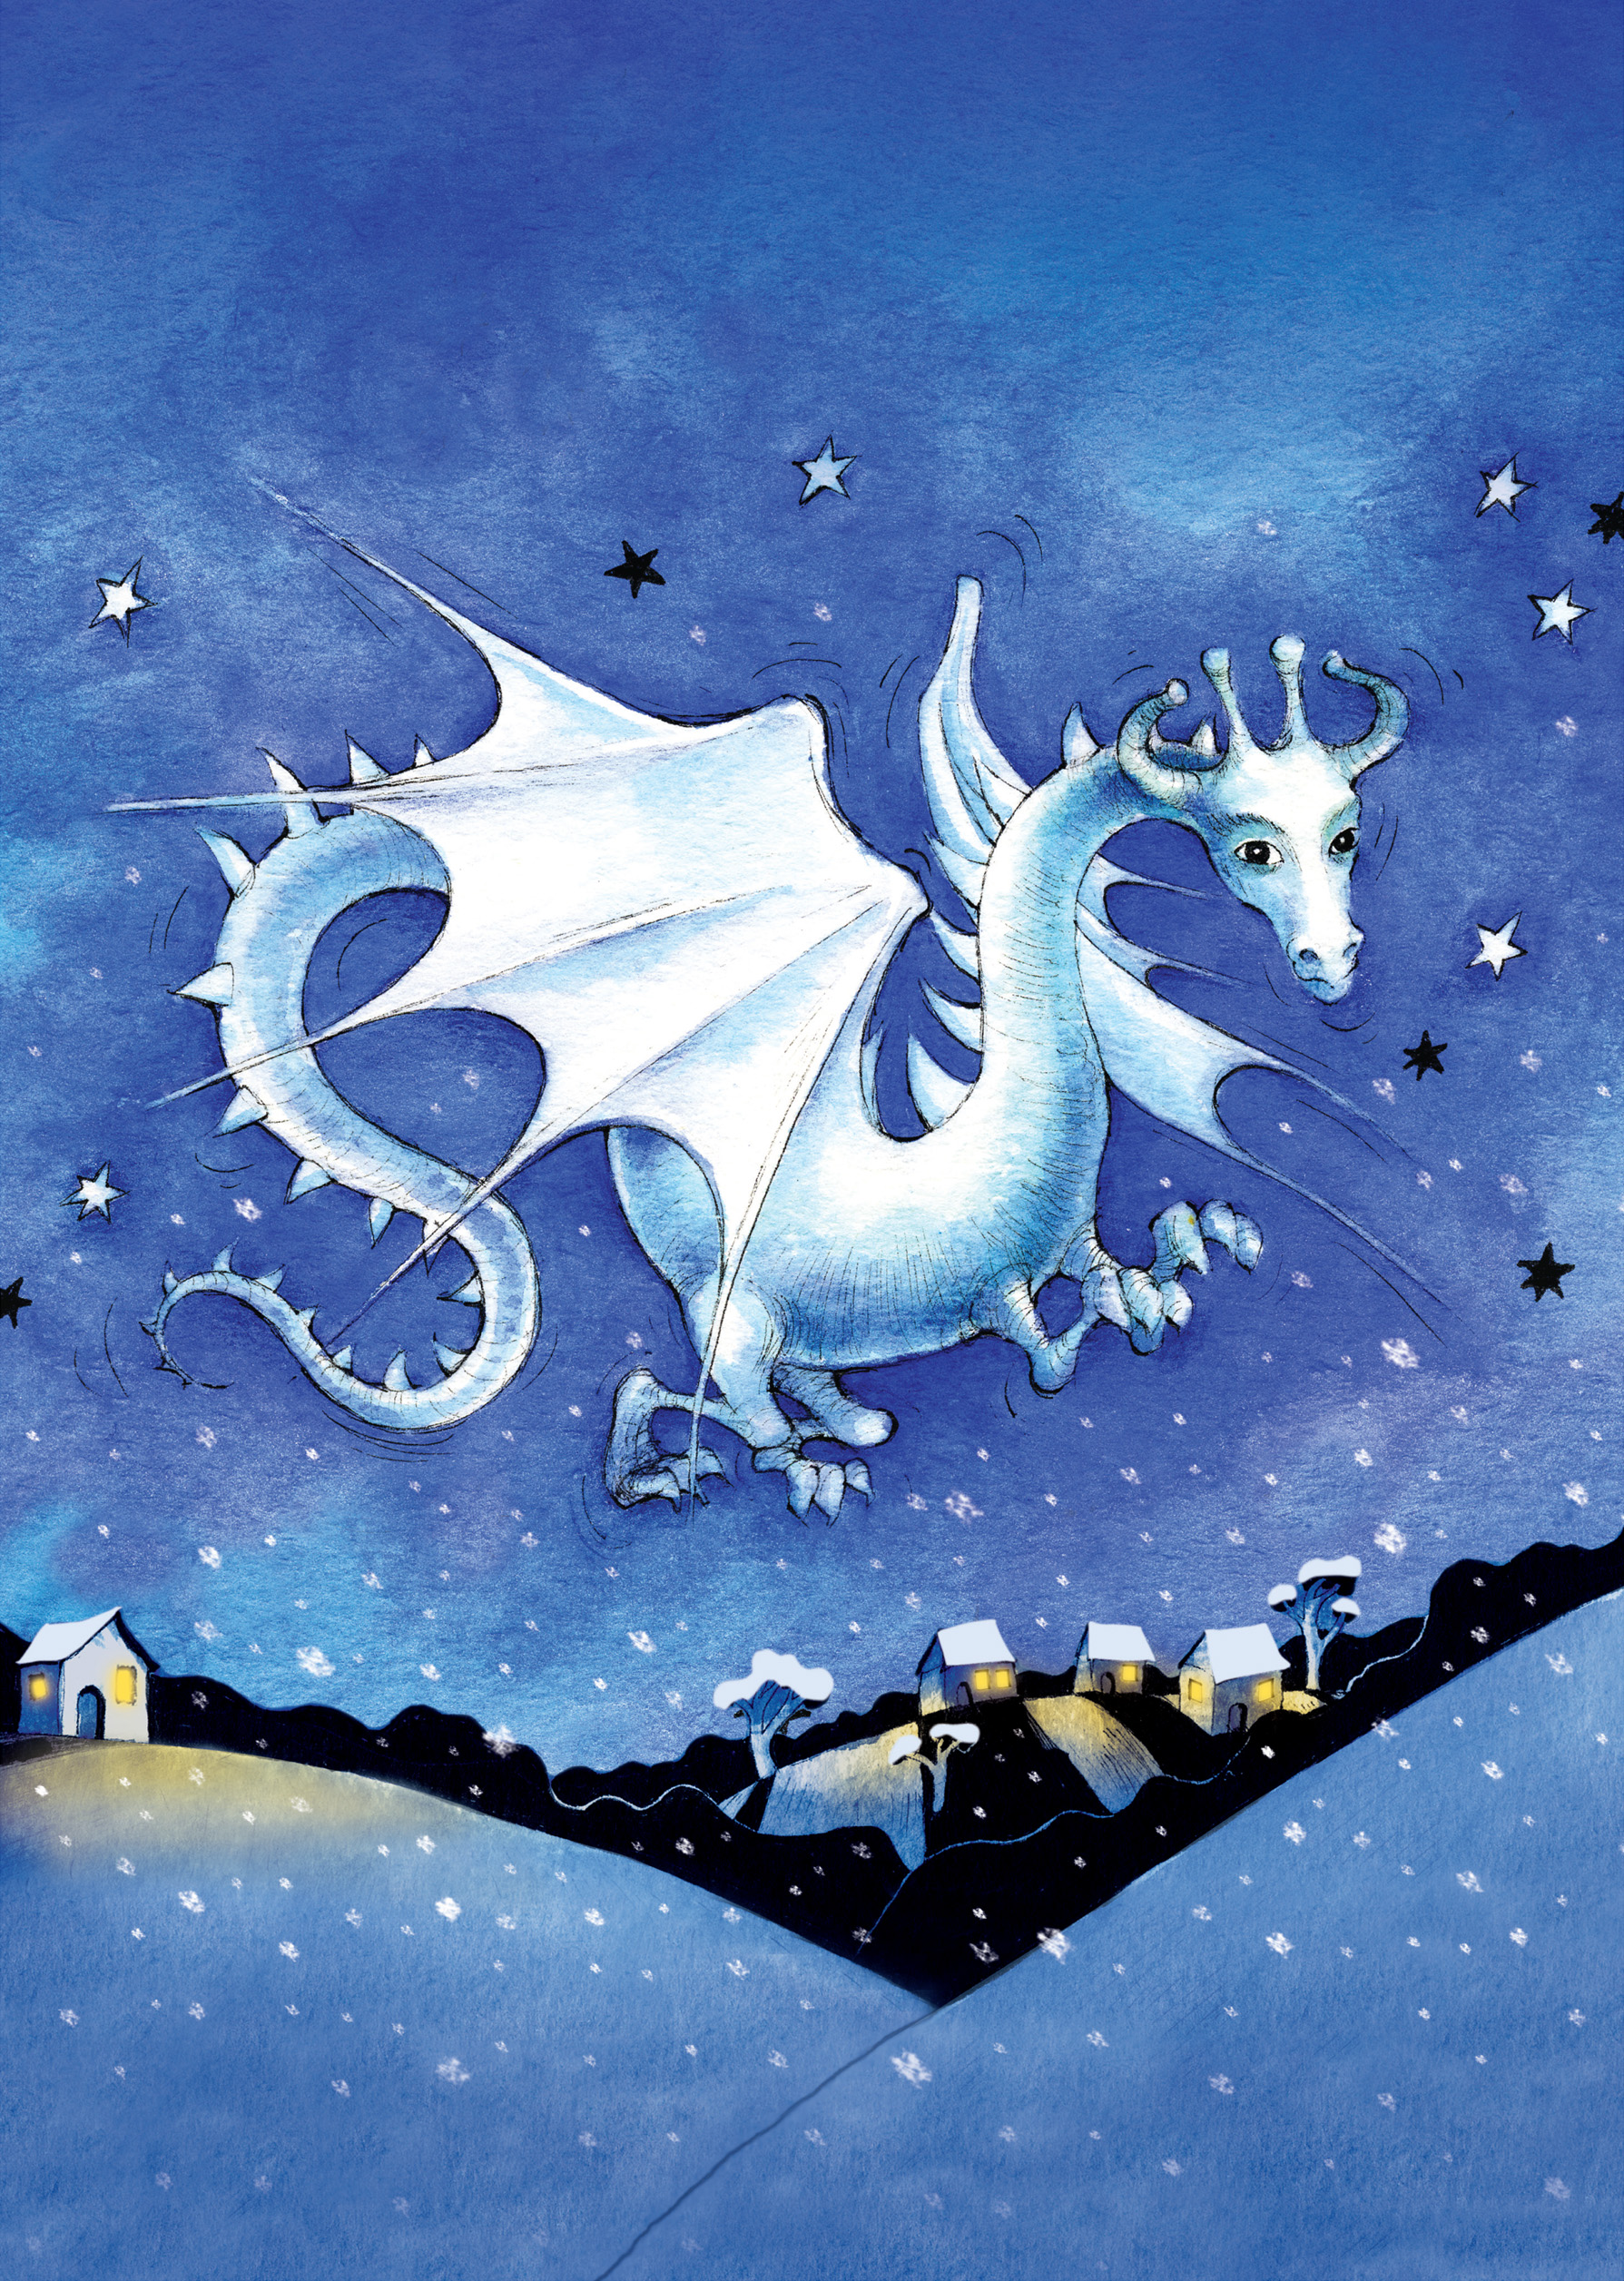 Tall Stories presents The Snow Dragon